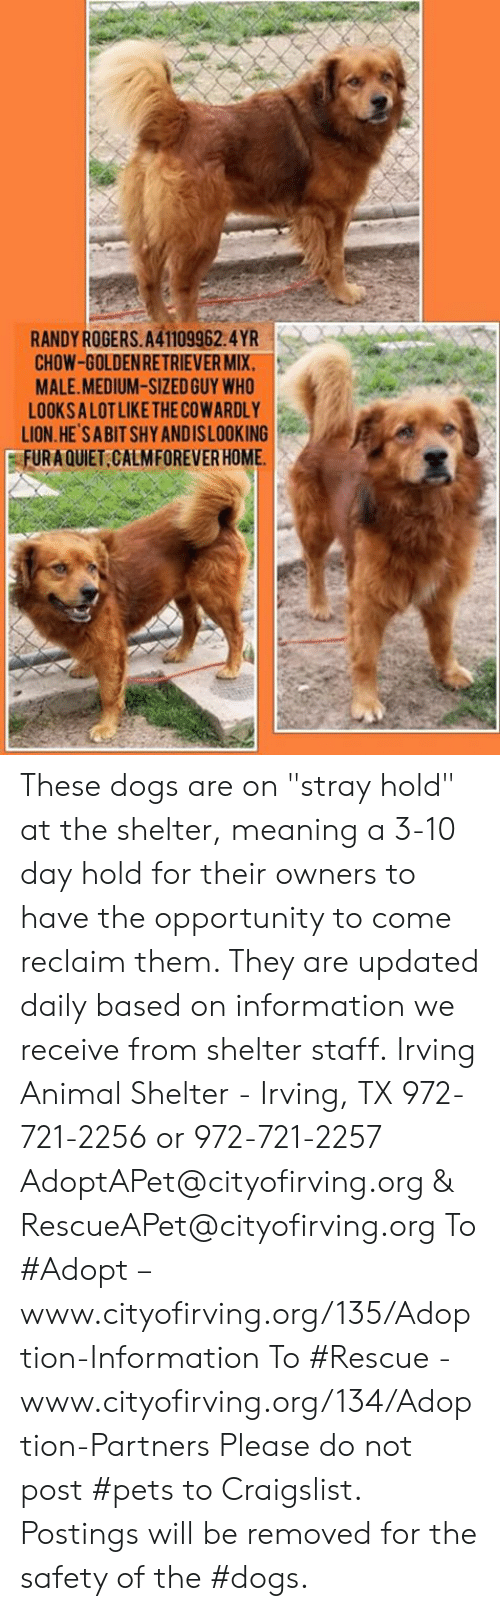 "Craigslist, Dogs, and Memes: RANDYROGERS.A41109962.4YR  CHOW-GOLDENRETRIEVER MIX.  MALE.MEDIUM-SIZED GUY WHO  LOOKSA LOT LIKE THE COWARDLY  LION.HE SABIT SHY ANDISLOOKING  FURAQUIET CALMFOREVER HOME These dogs are on ""stray hold"" at the shelter, meaning a 3-10 day hold for their owners to have the opportunity to come reclaim them. They are updated daily based on information we receive from shelter staff.  Irving Animal Shelter - Irving, TX 972-721-2256 or 972-721-2257 AdoptAPet@cityofirving.org & RescueAPet@cityofirving.org  To #Adopt – www.cityofirving.org/135/Adoption-Information   To #Rescue - www.cityofirving.org/134/Adoption-Partners   Please do not post #pets to Craigslist. Postings will be removed for the safety of the #dogs."